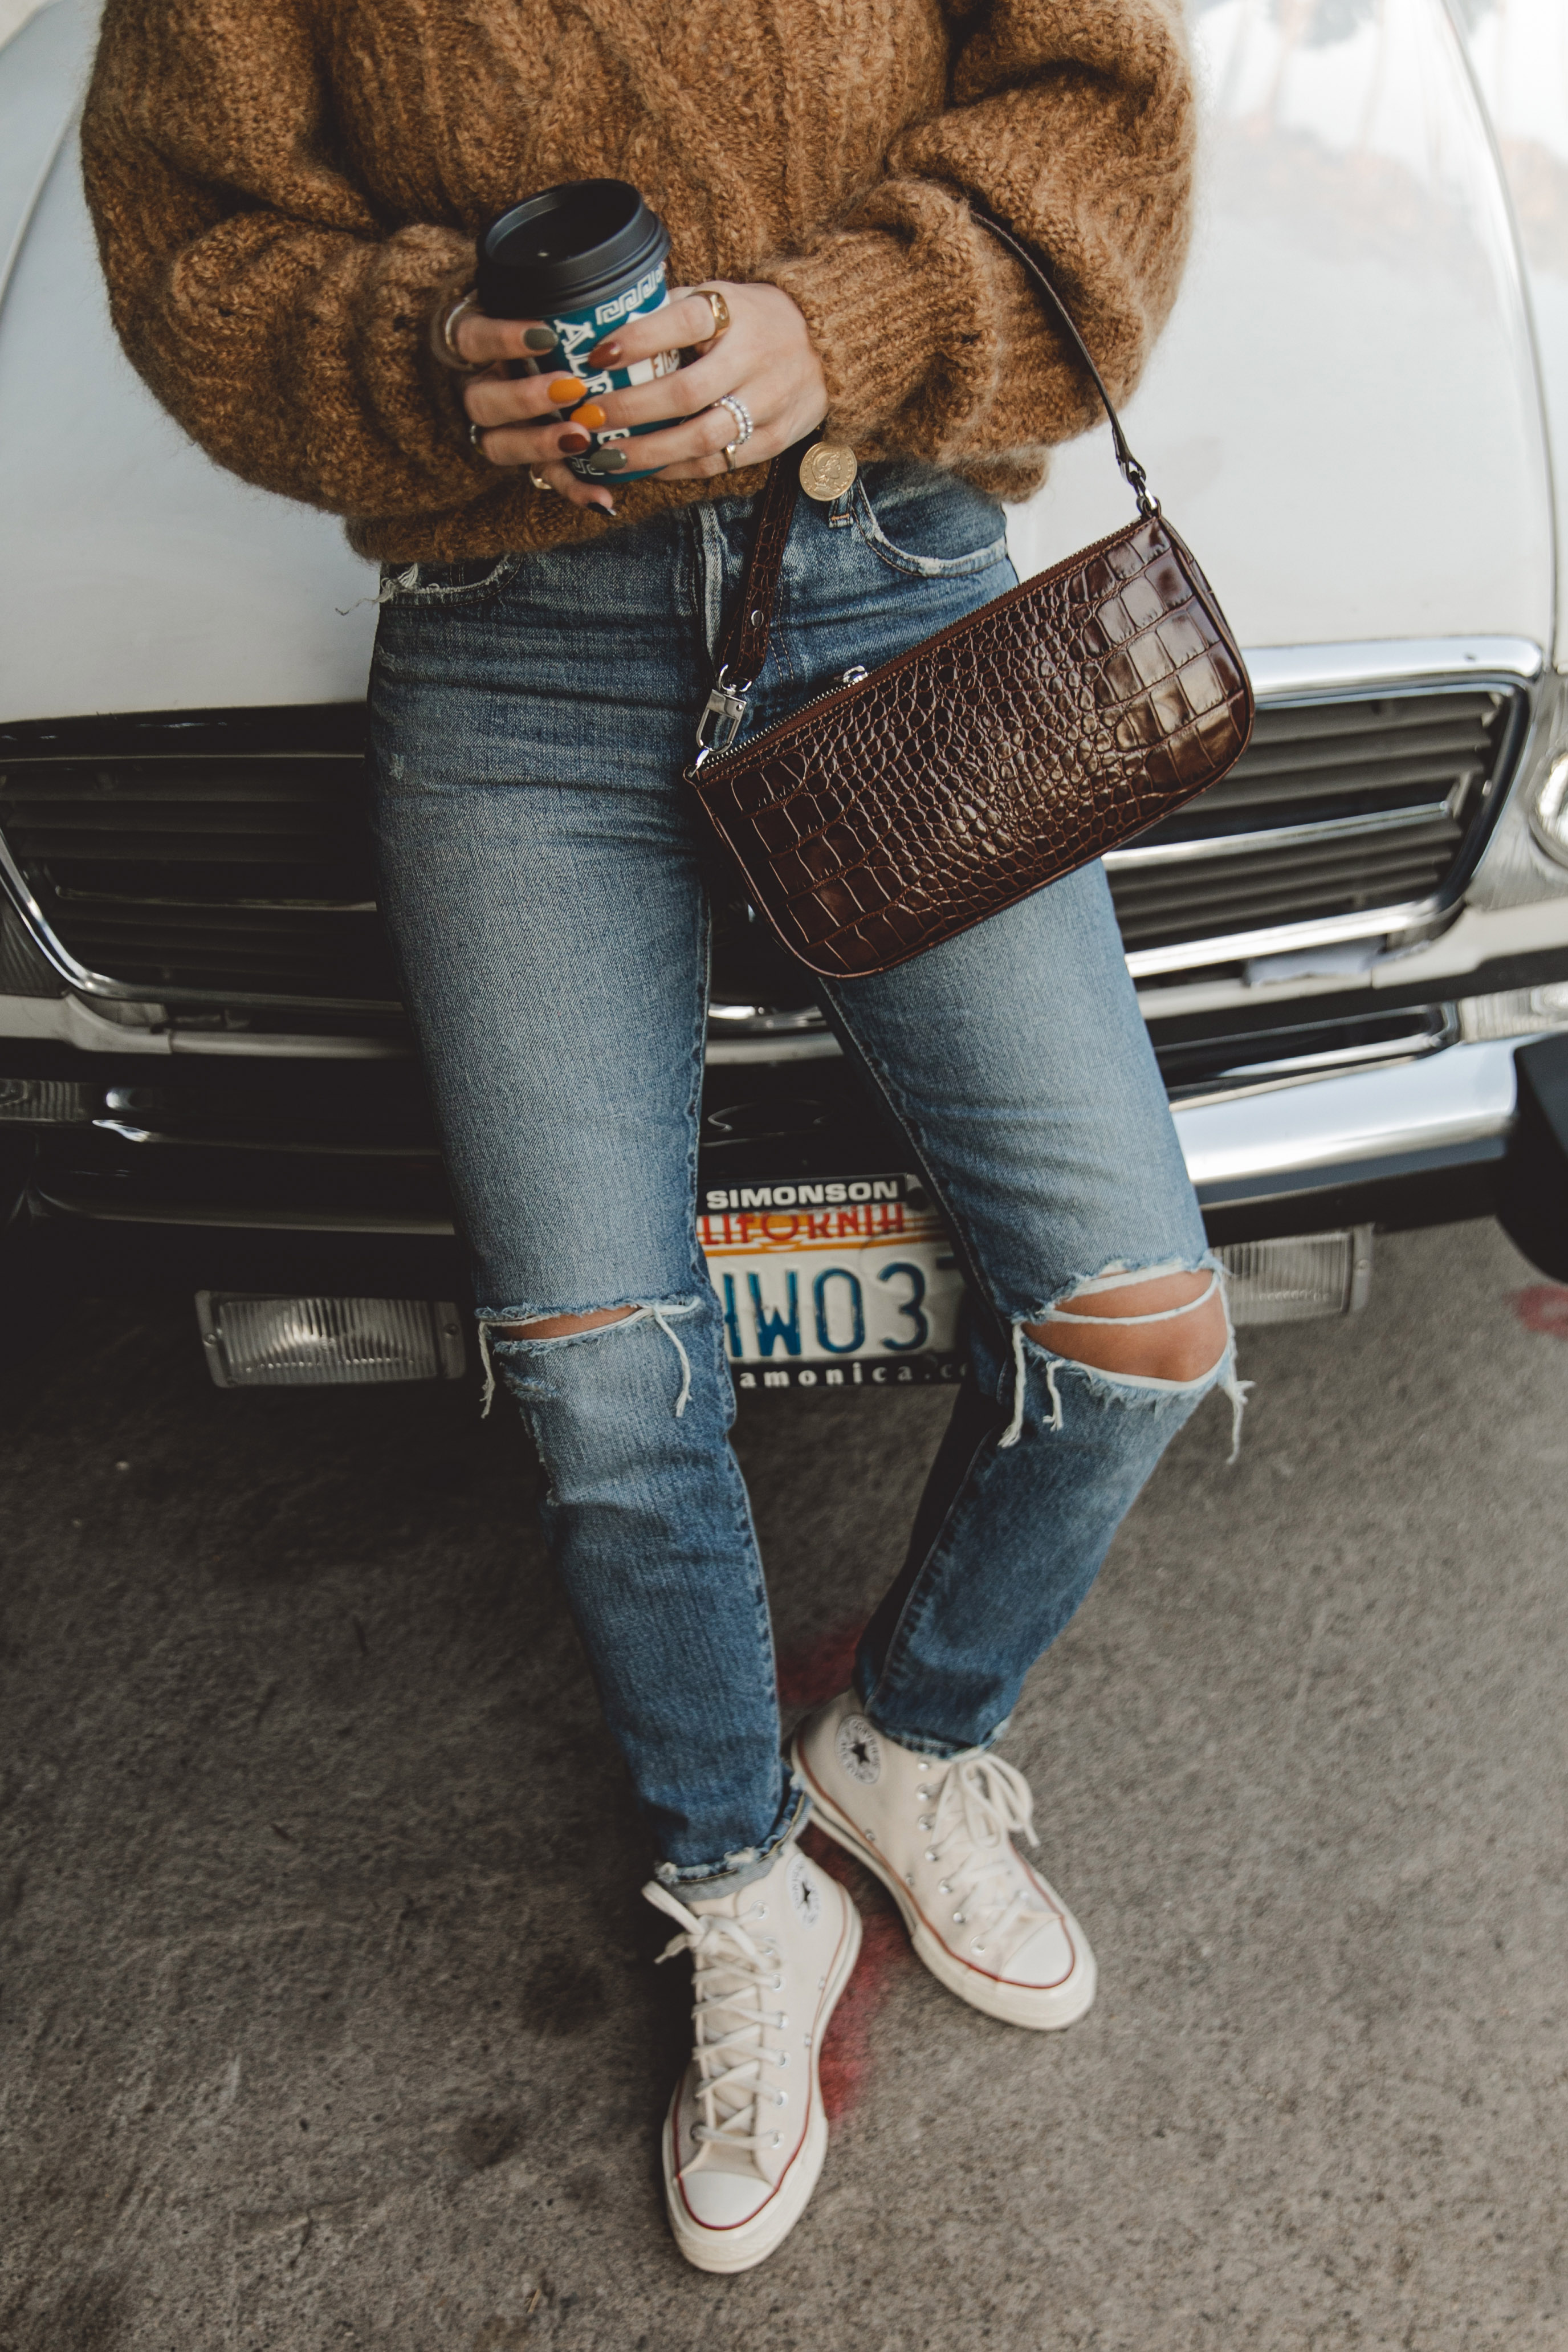 Sara is wearing Isabel Marant camel knit sweater, Moussy Vintage tapered jeans, By Far leather bag and All-Star retro sneakers